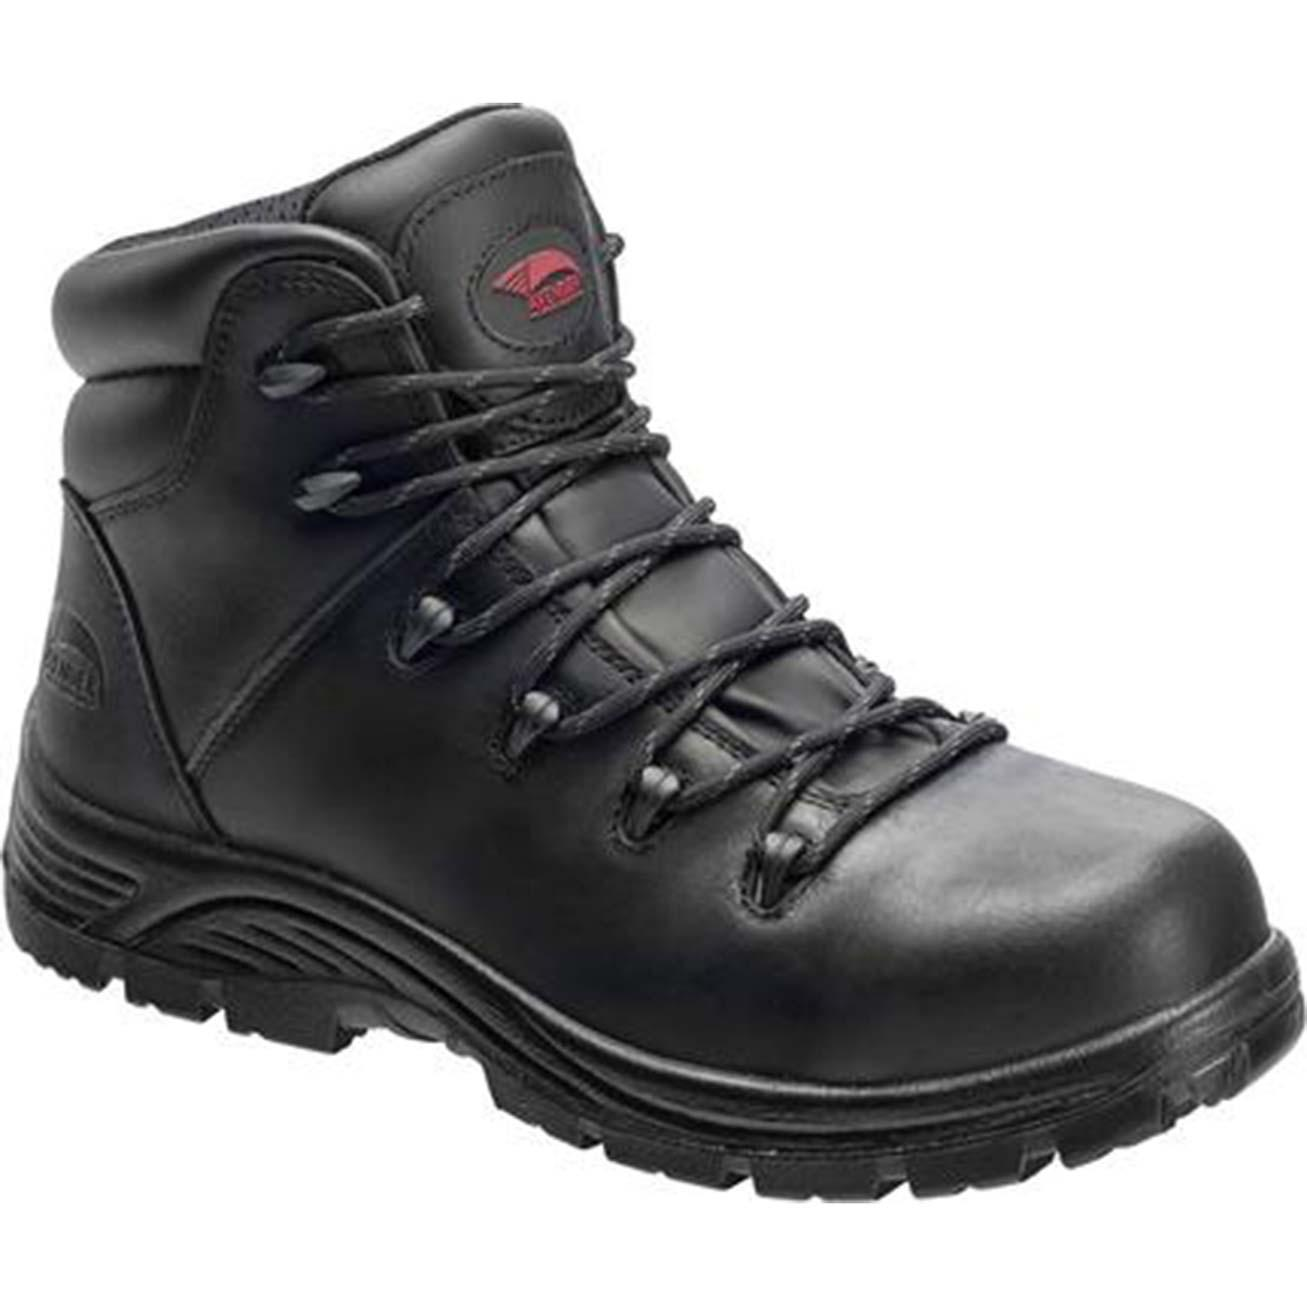 1f09322d15e Avenger Composite Toe Puncture-Resistant Waterproof Work Boot